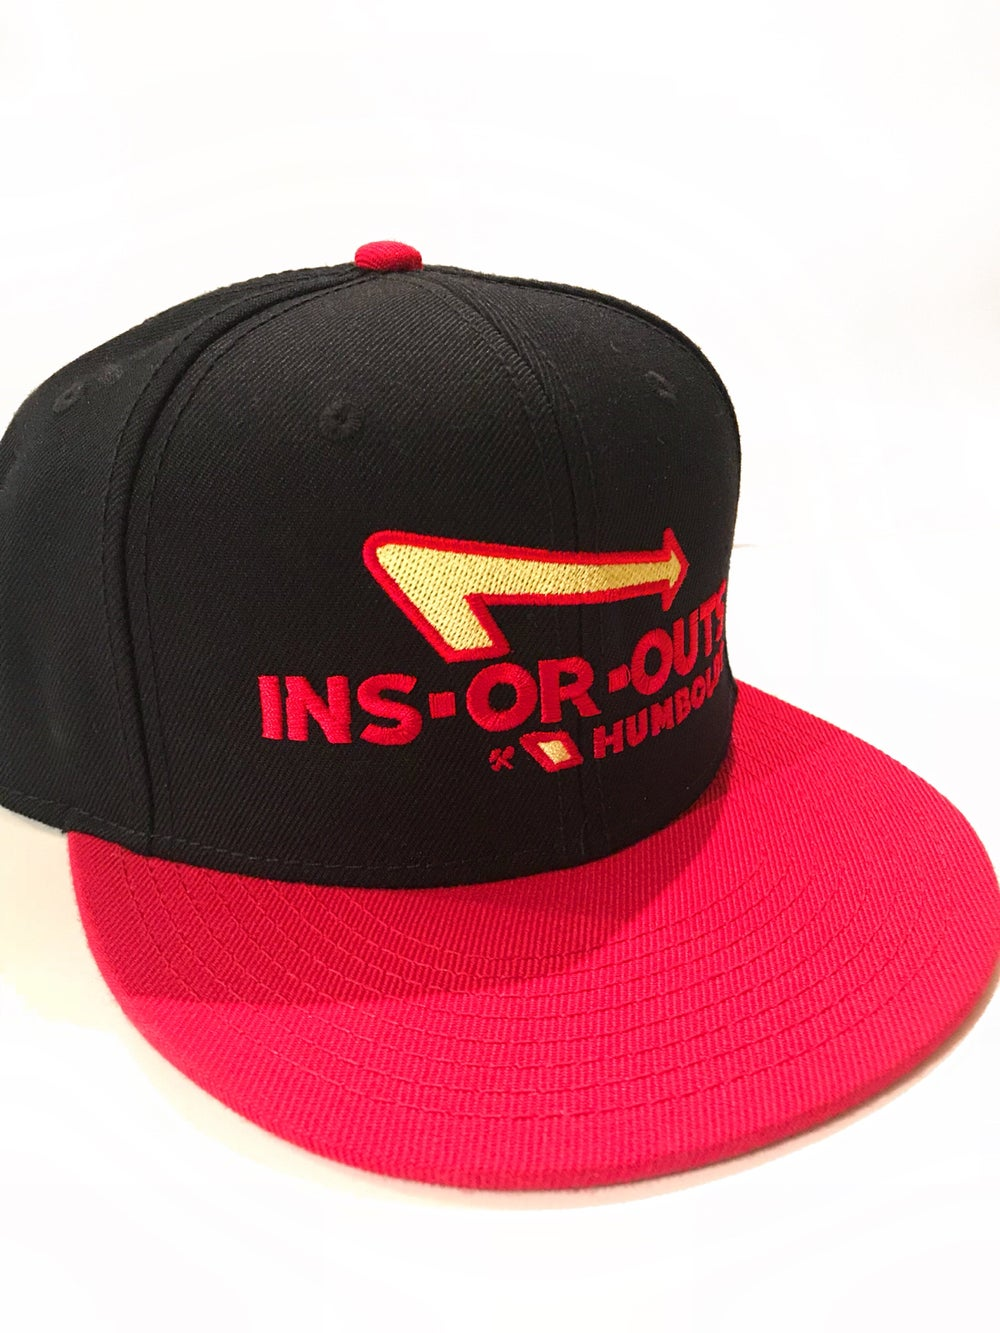 "Image of ""Ins -Or- Outs"" Snapback Hat"